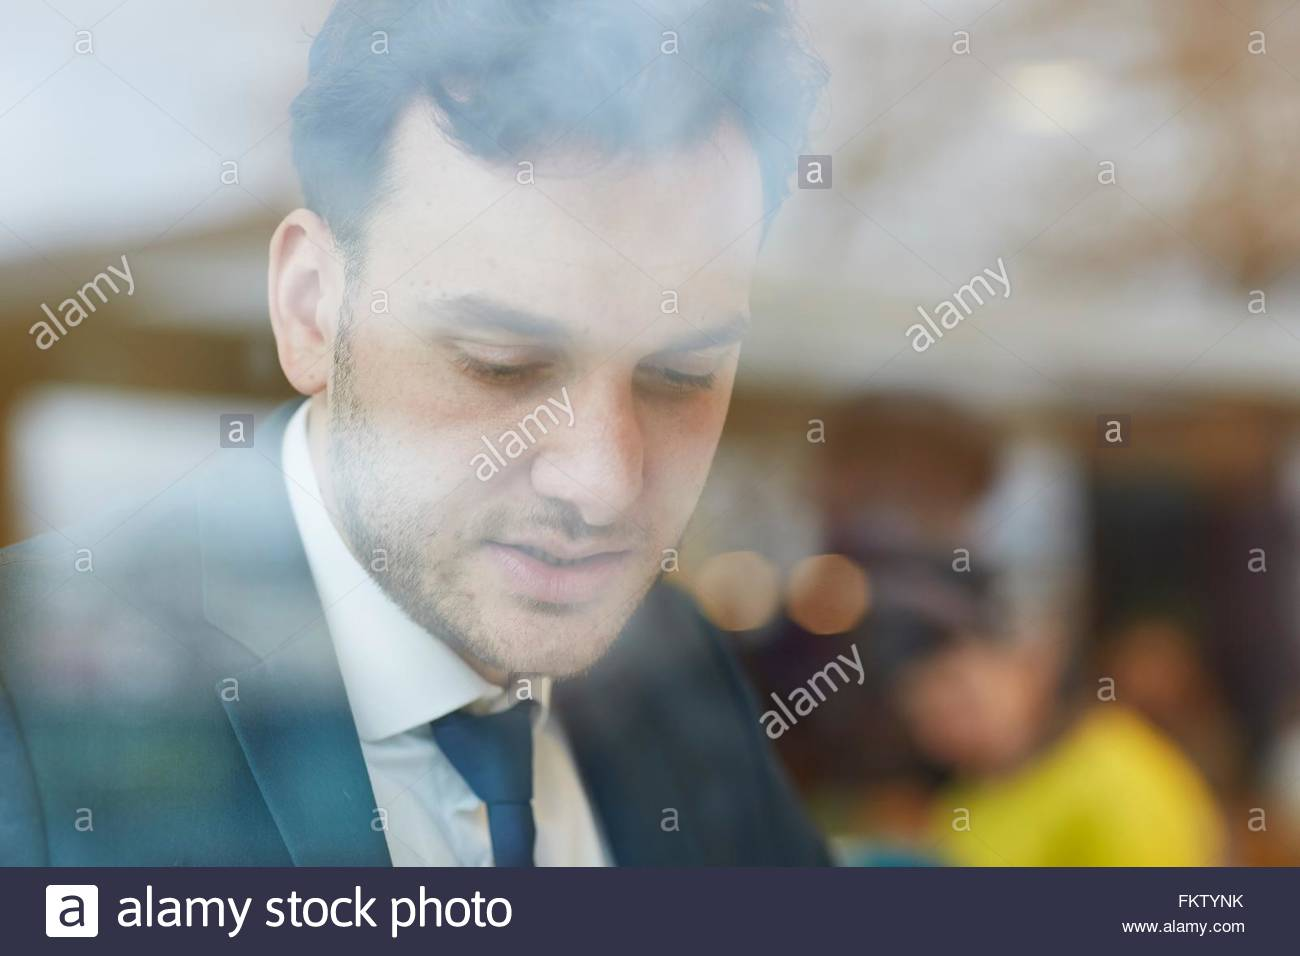 View through window of businessman wearing shirt and tie looking down - Stock Image